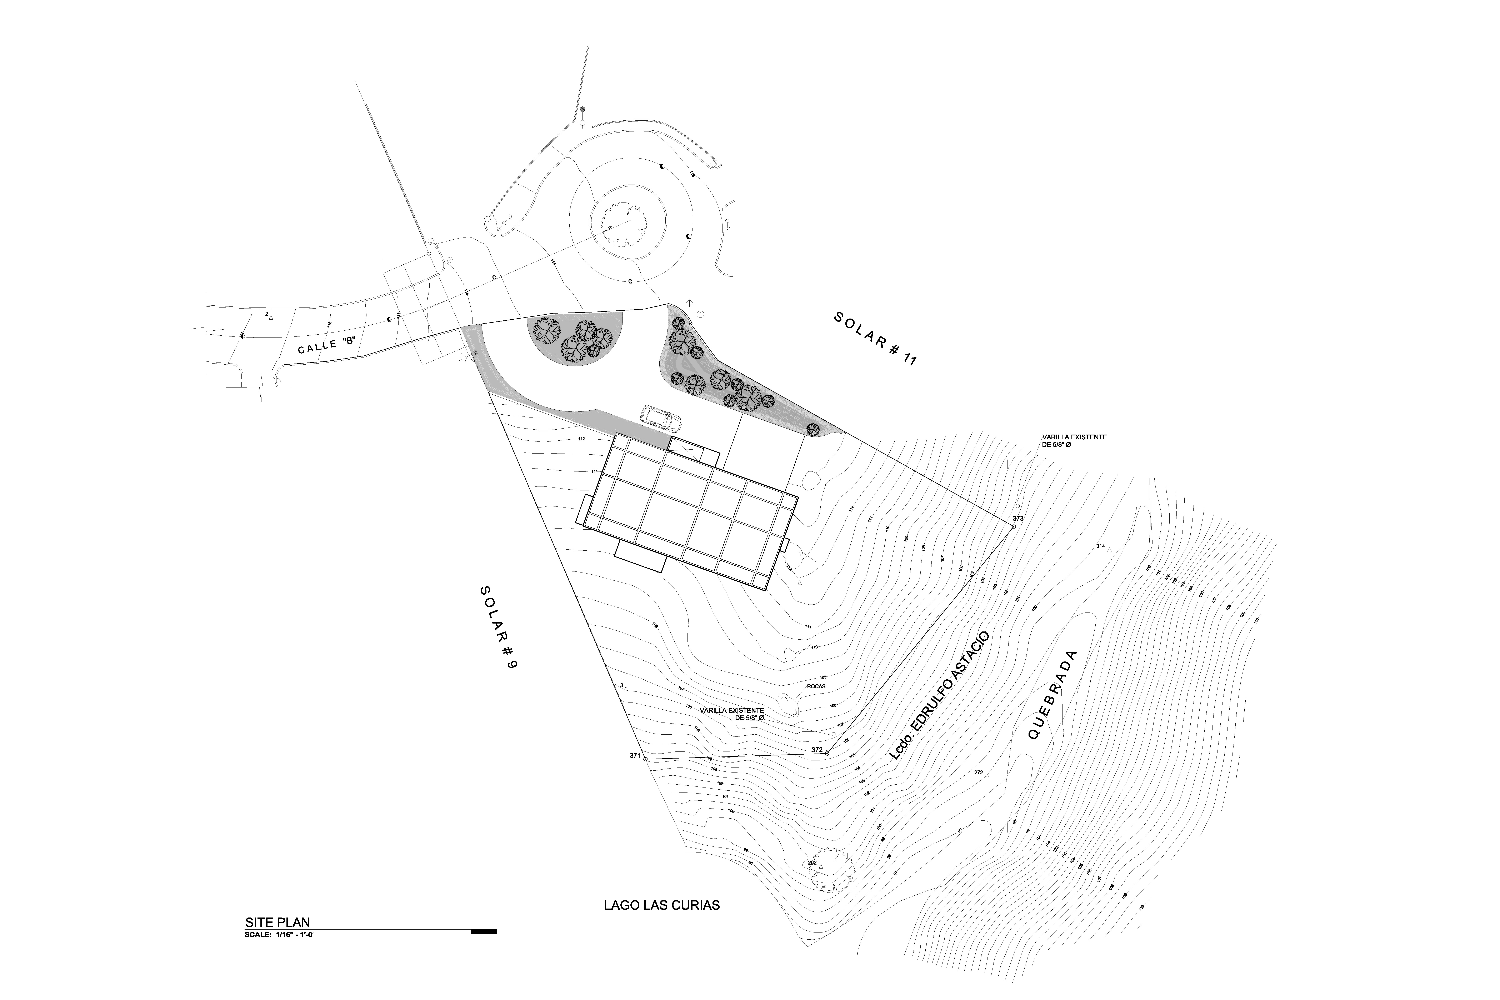 000-00-2016-PROP SITE PLAN-A-01 Model _edited